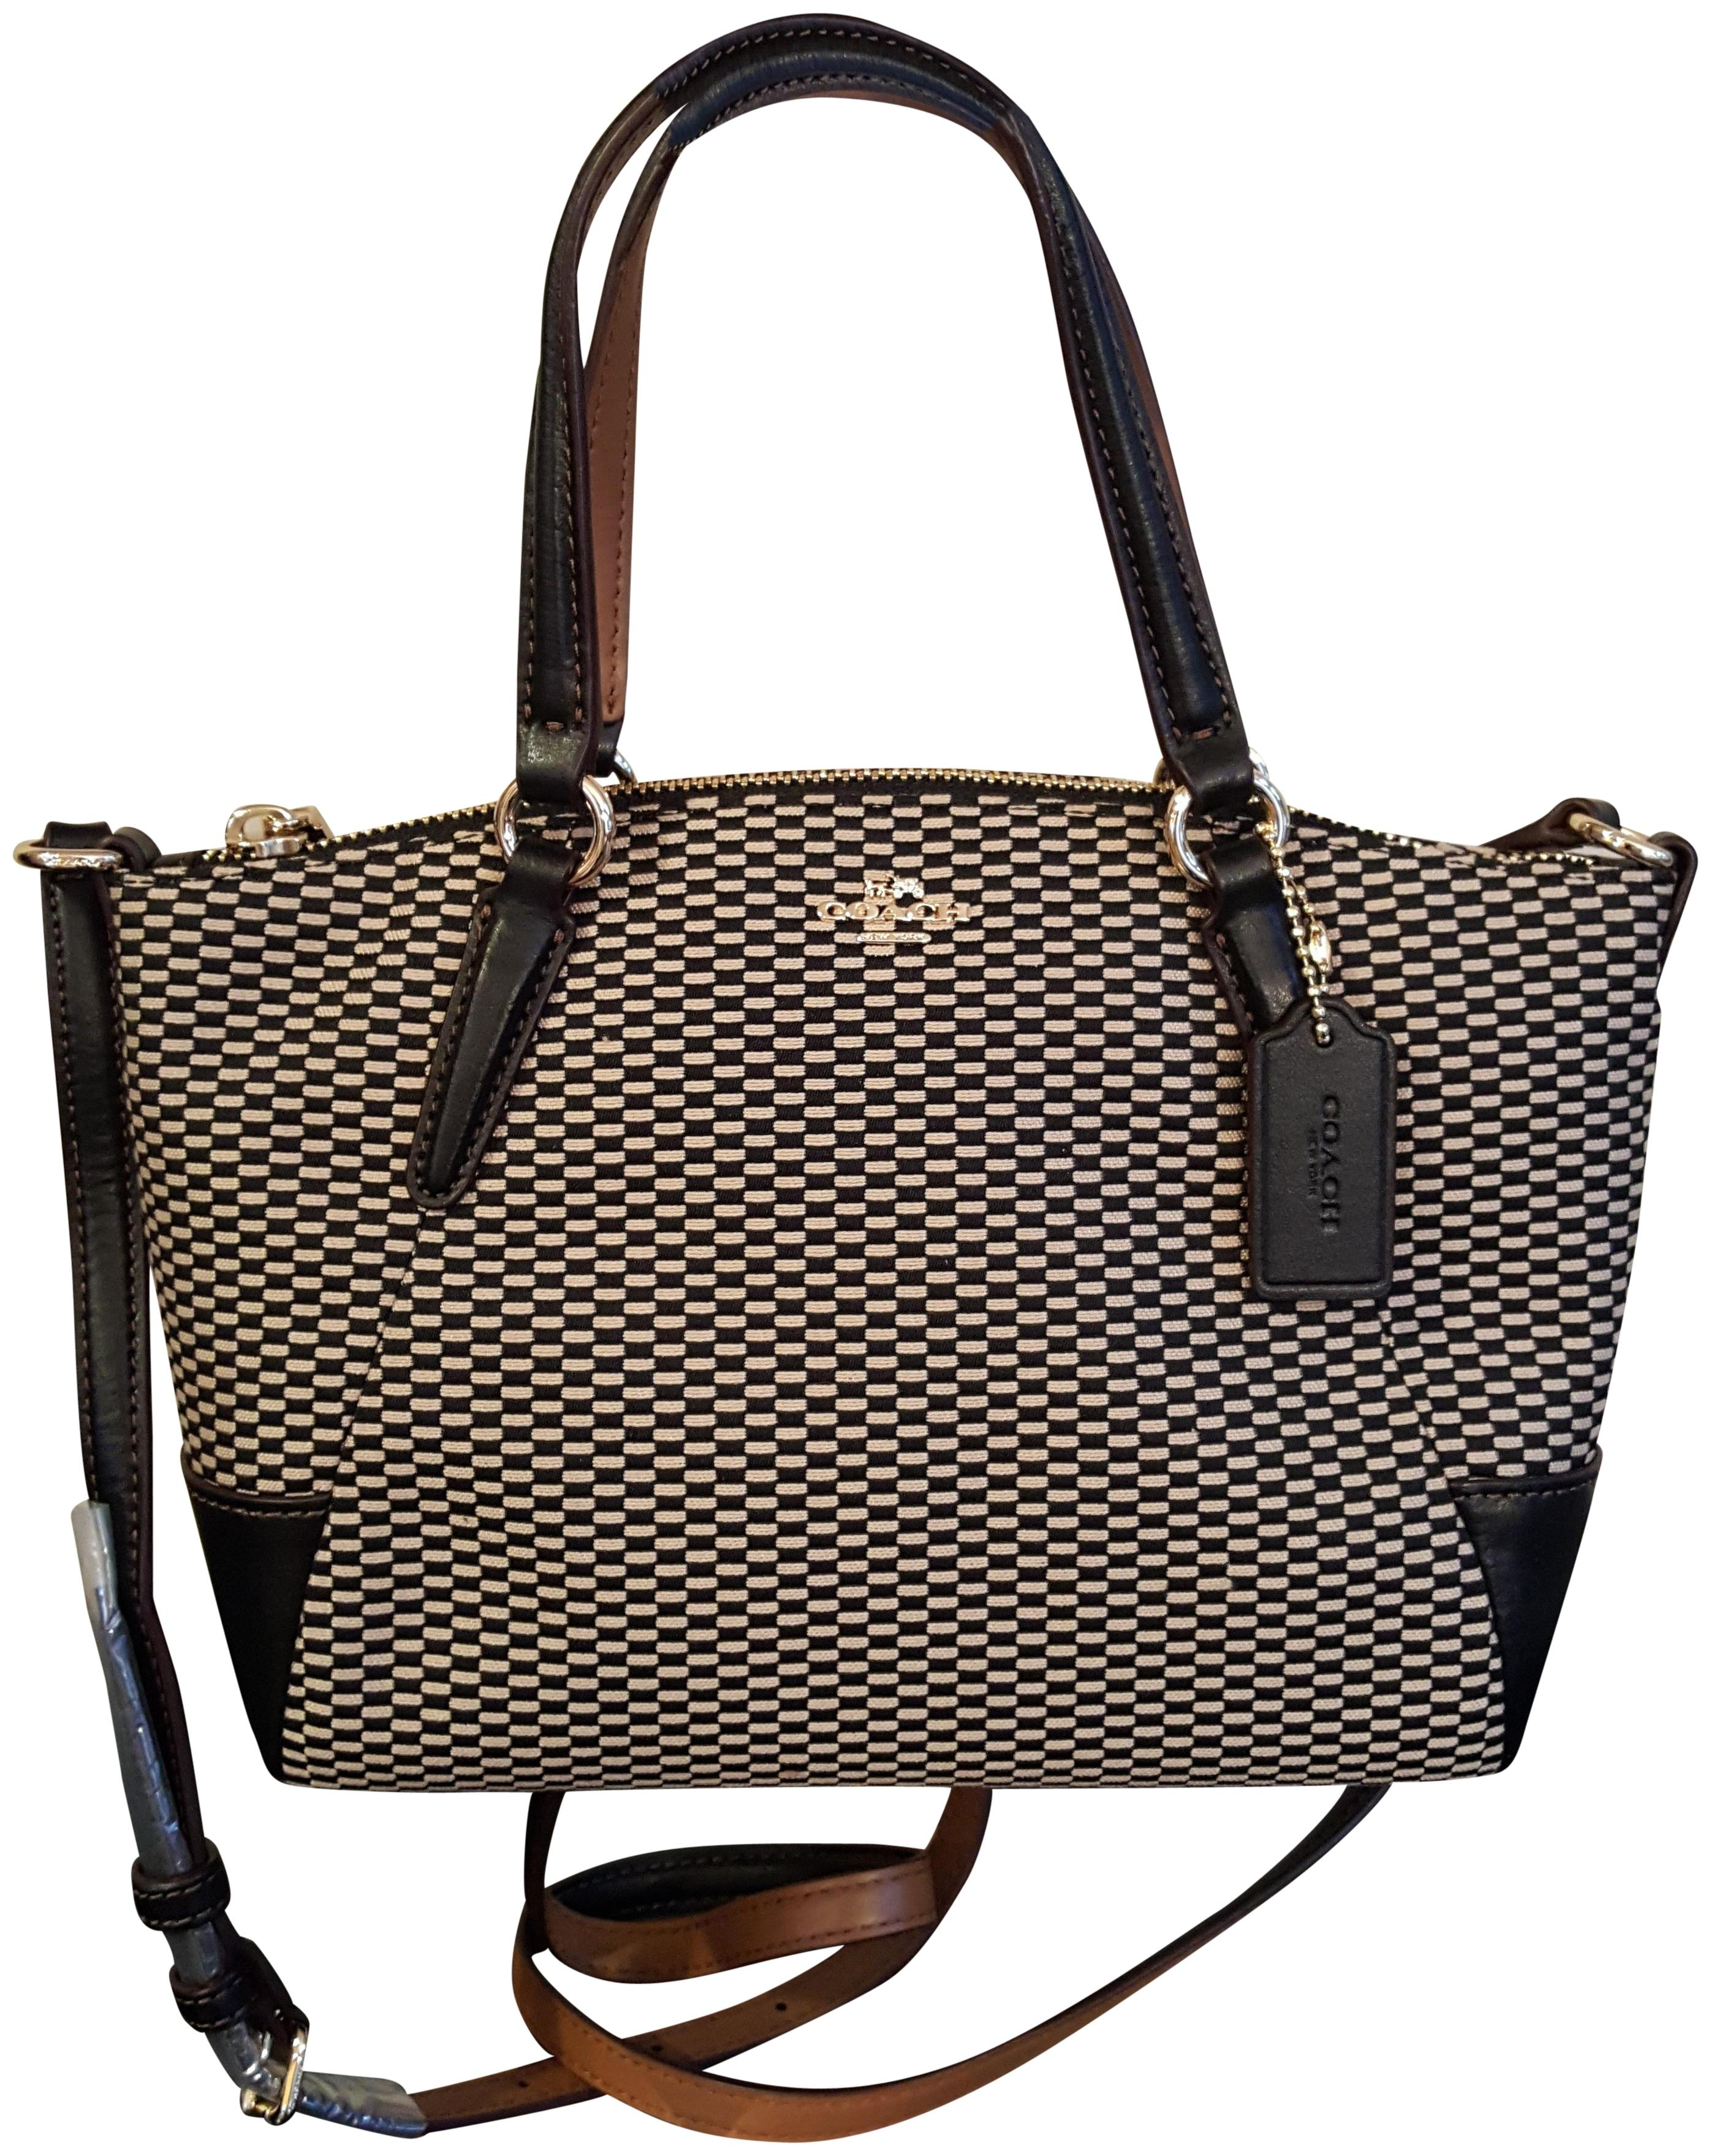 06af97962cc8 ... promo code for coach kelsey crossbody exploded rep legacy jaquard  satchel in milk black 653a1 b1cfd